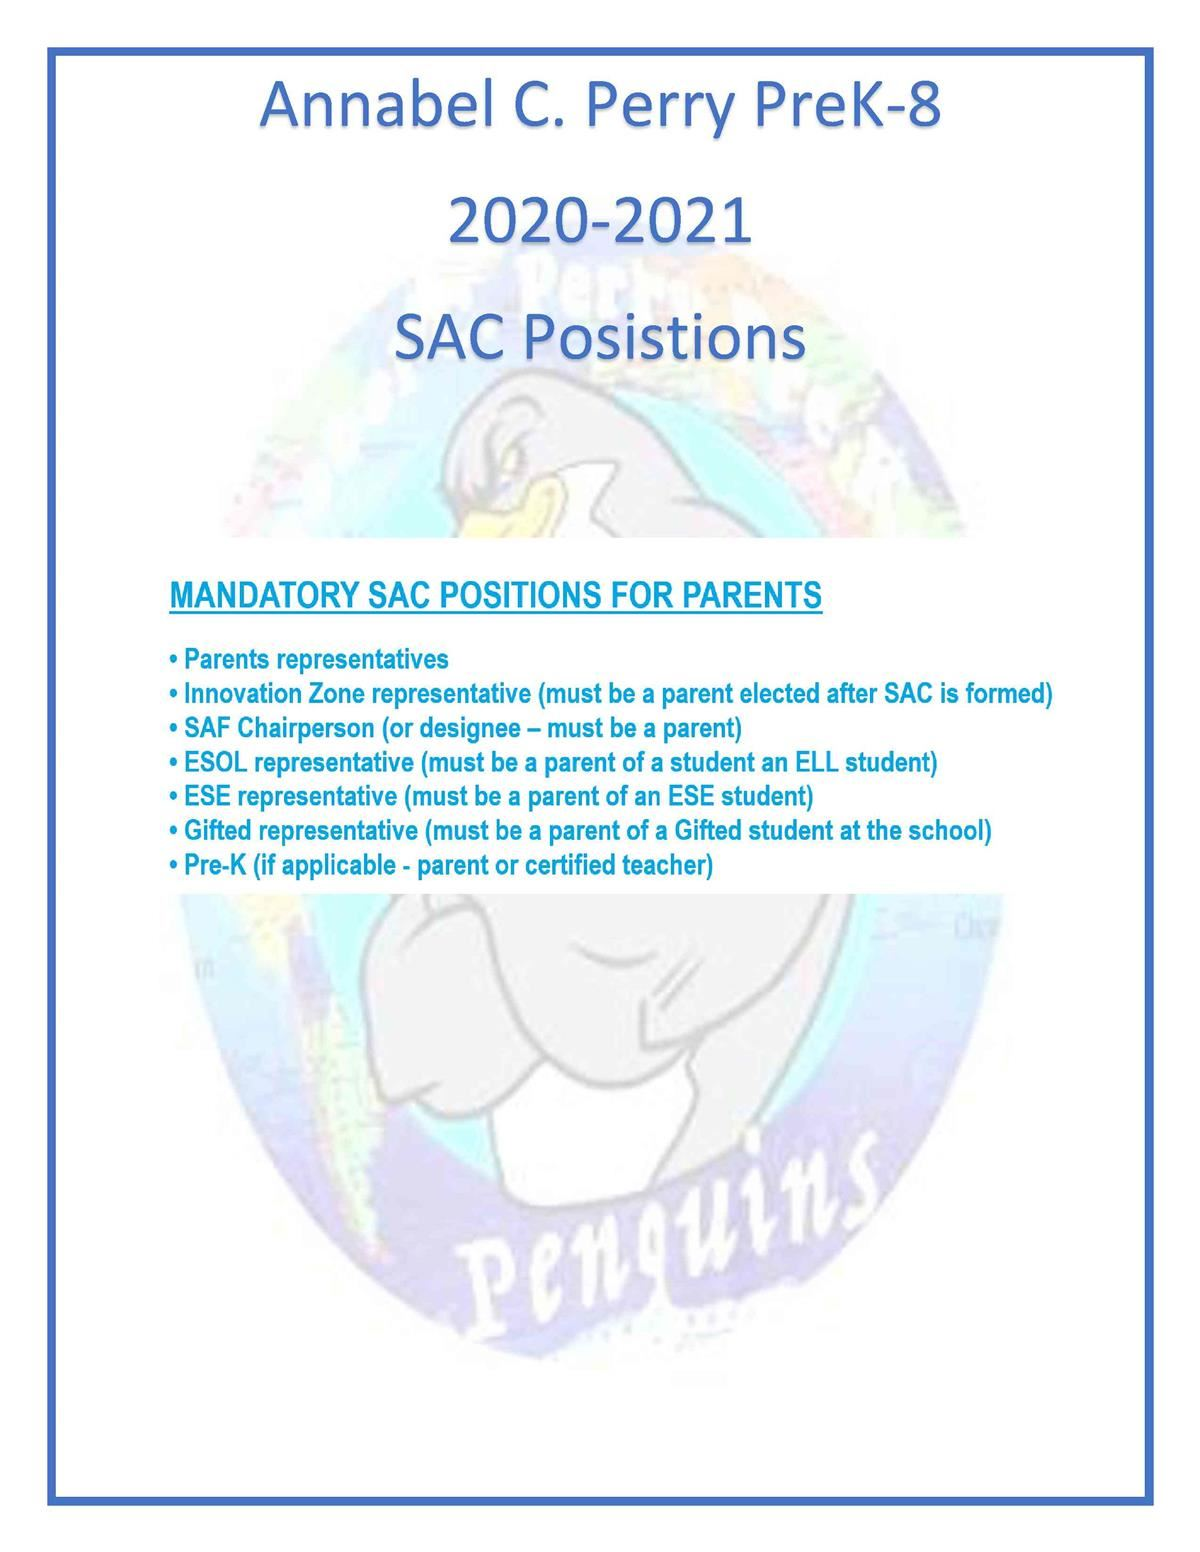 SAC Positions 2020-2021